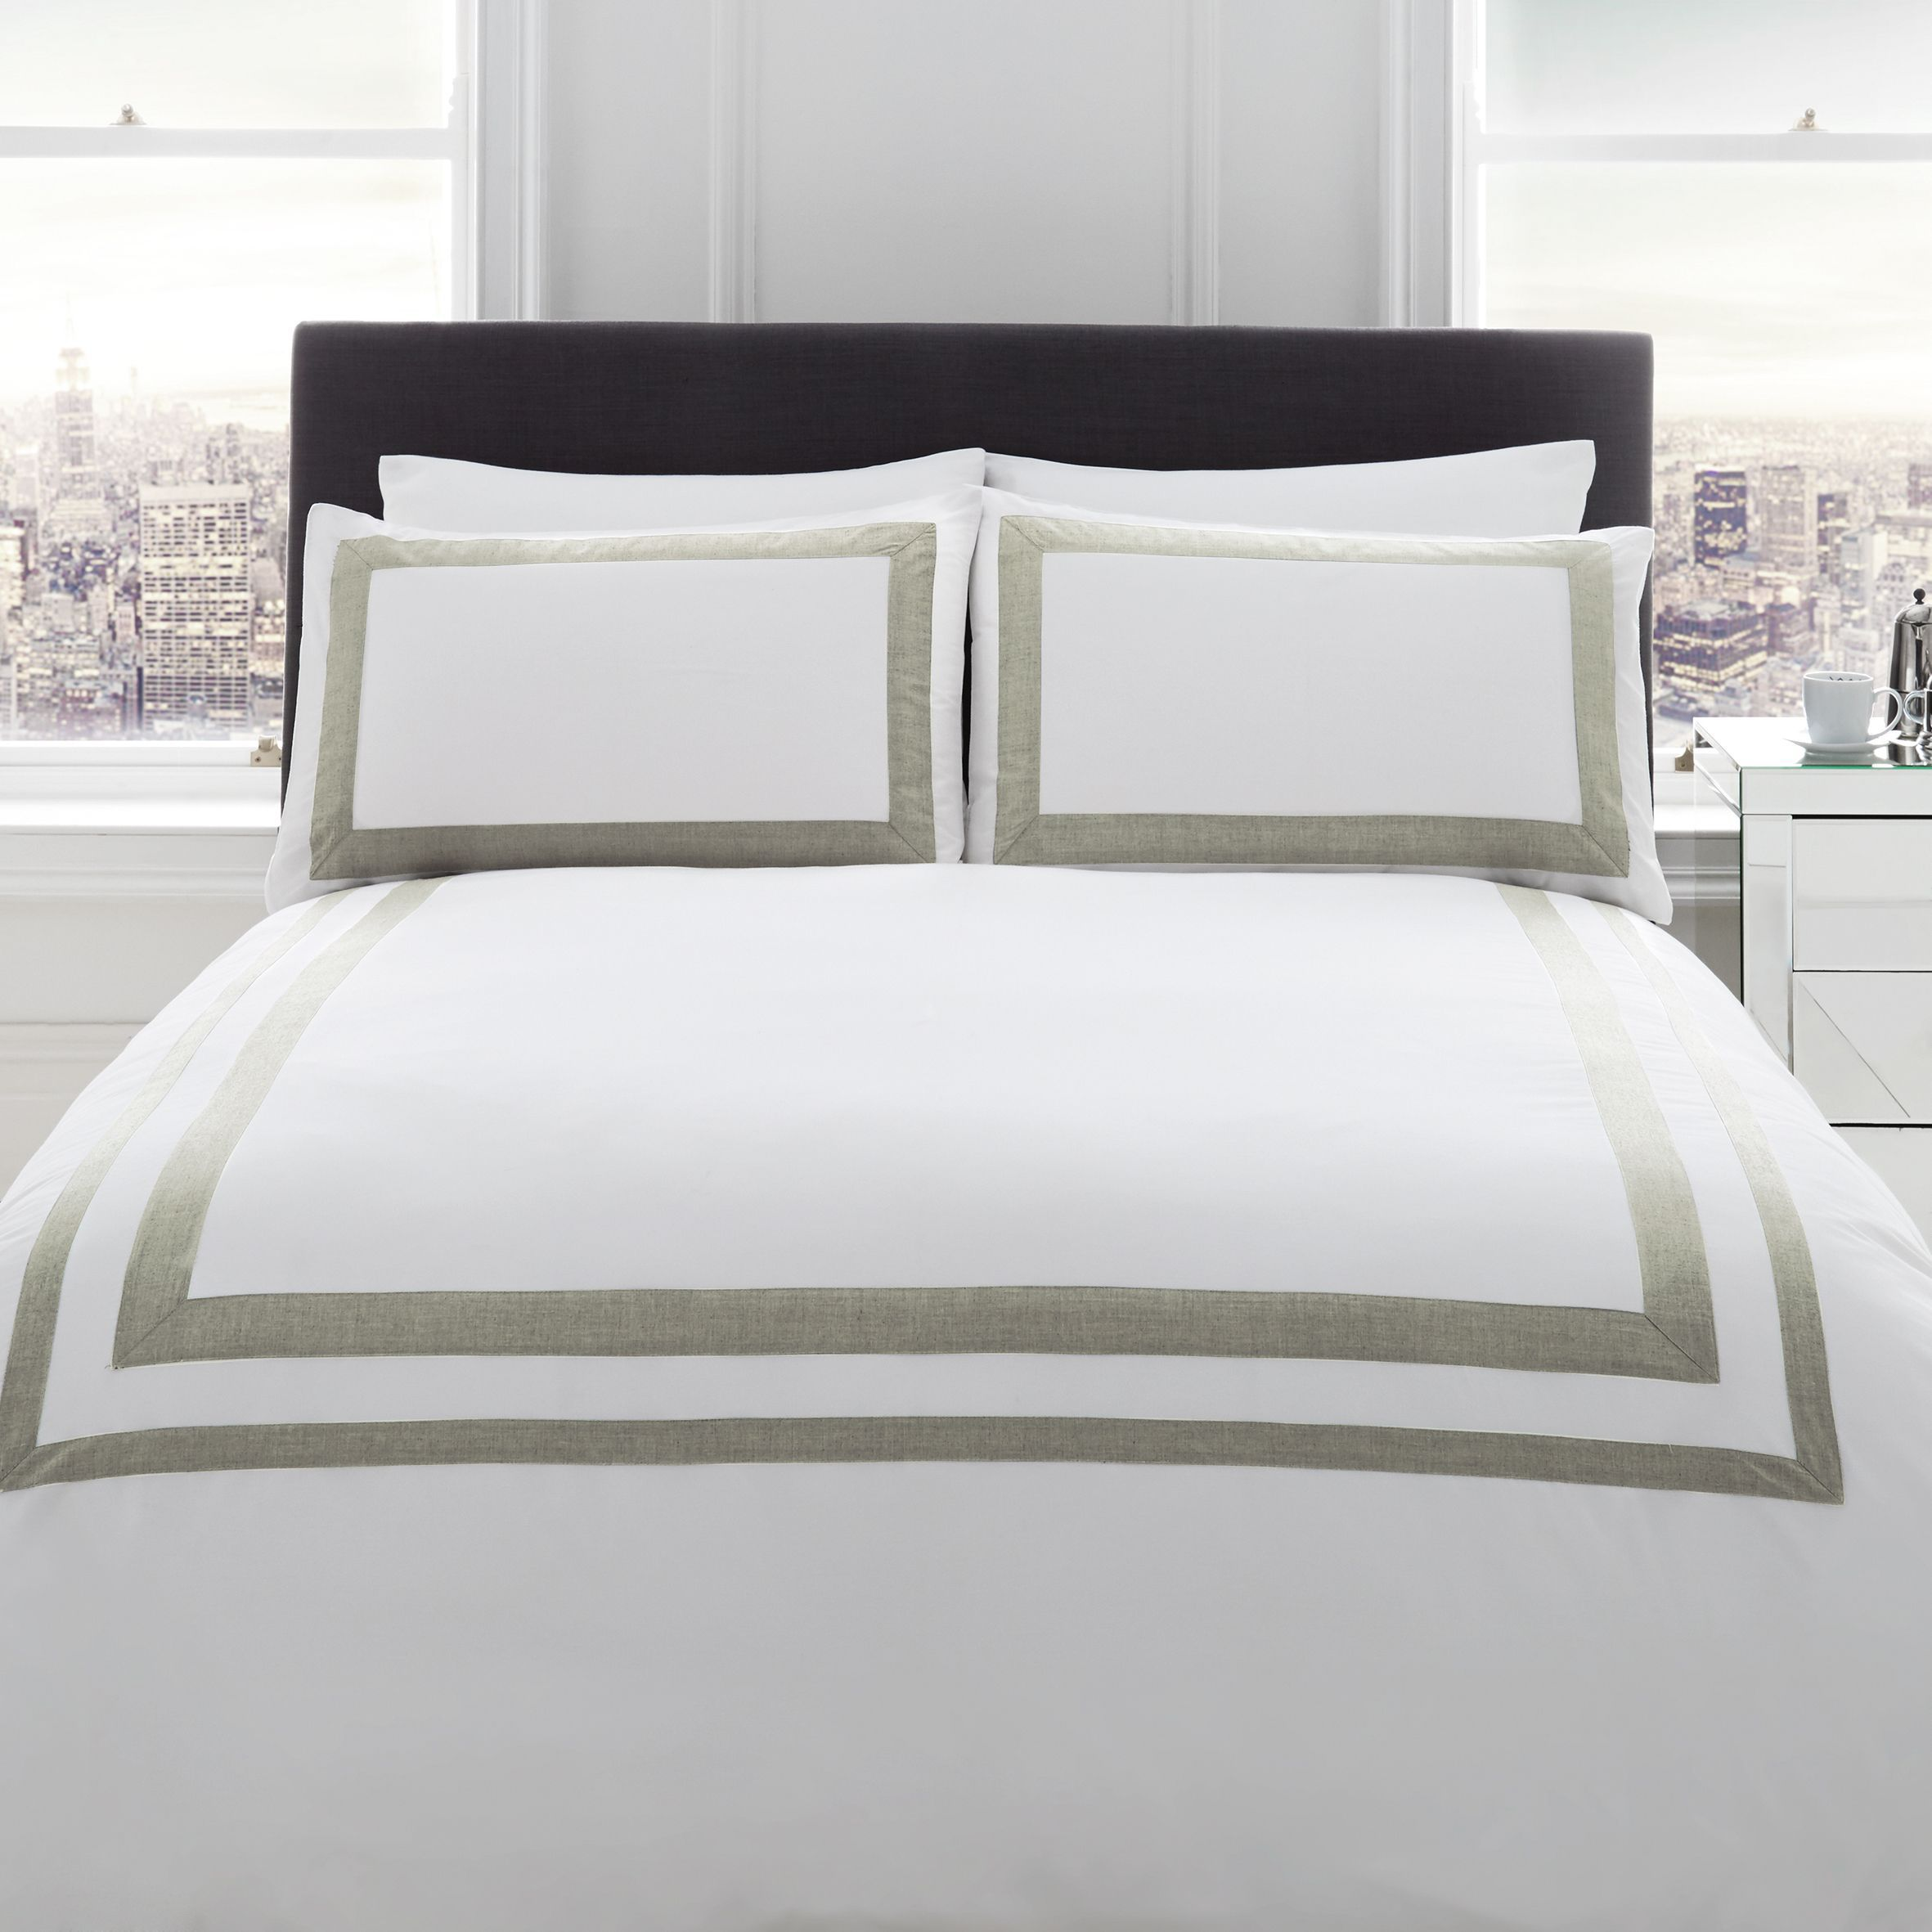 king duvet touch pin clearance com lyocell cool cover tencel k x overstock luxury sale shopping white silky set